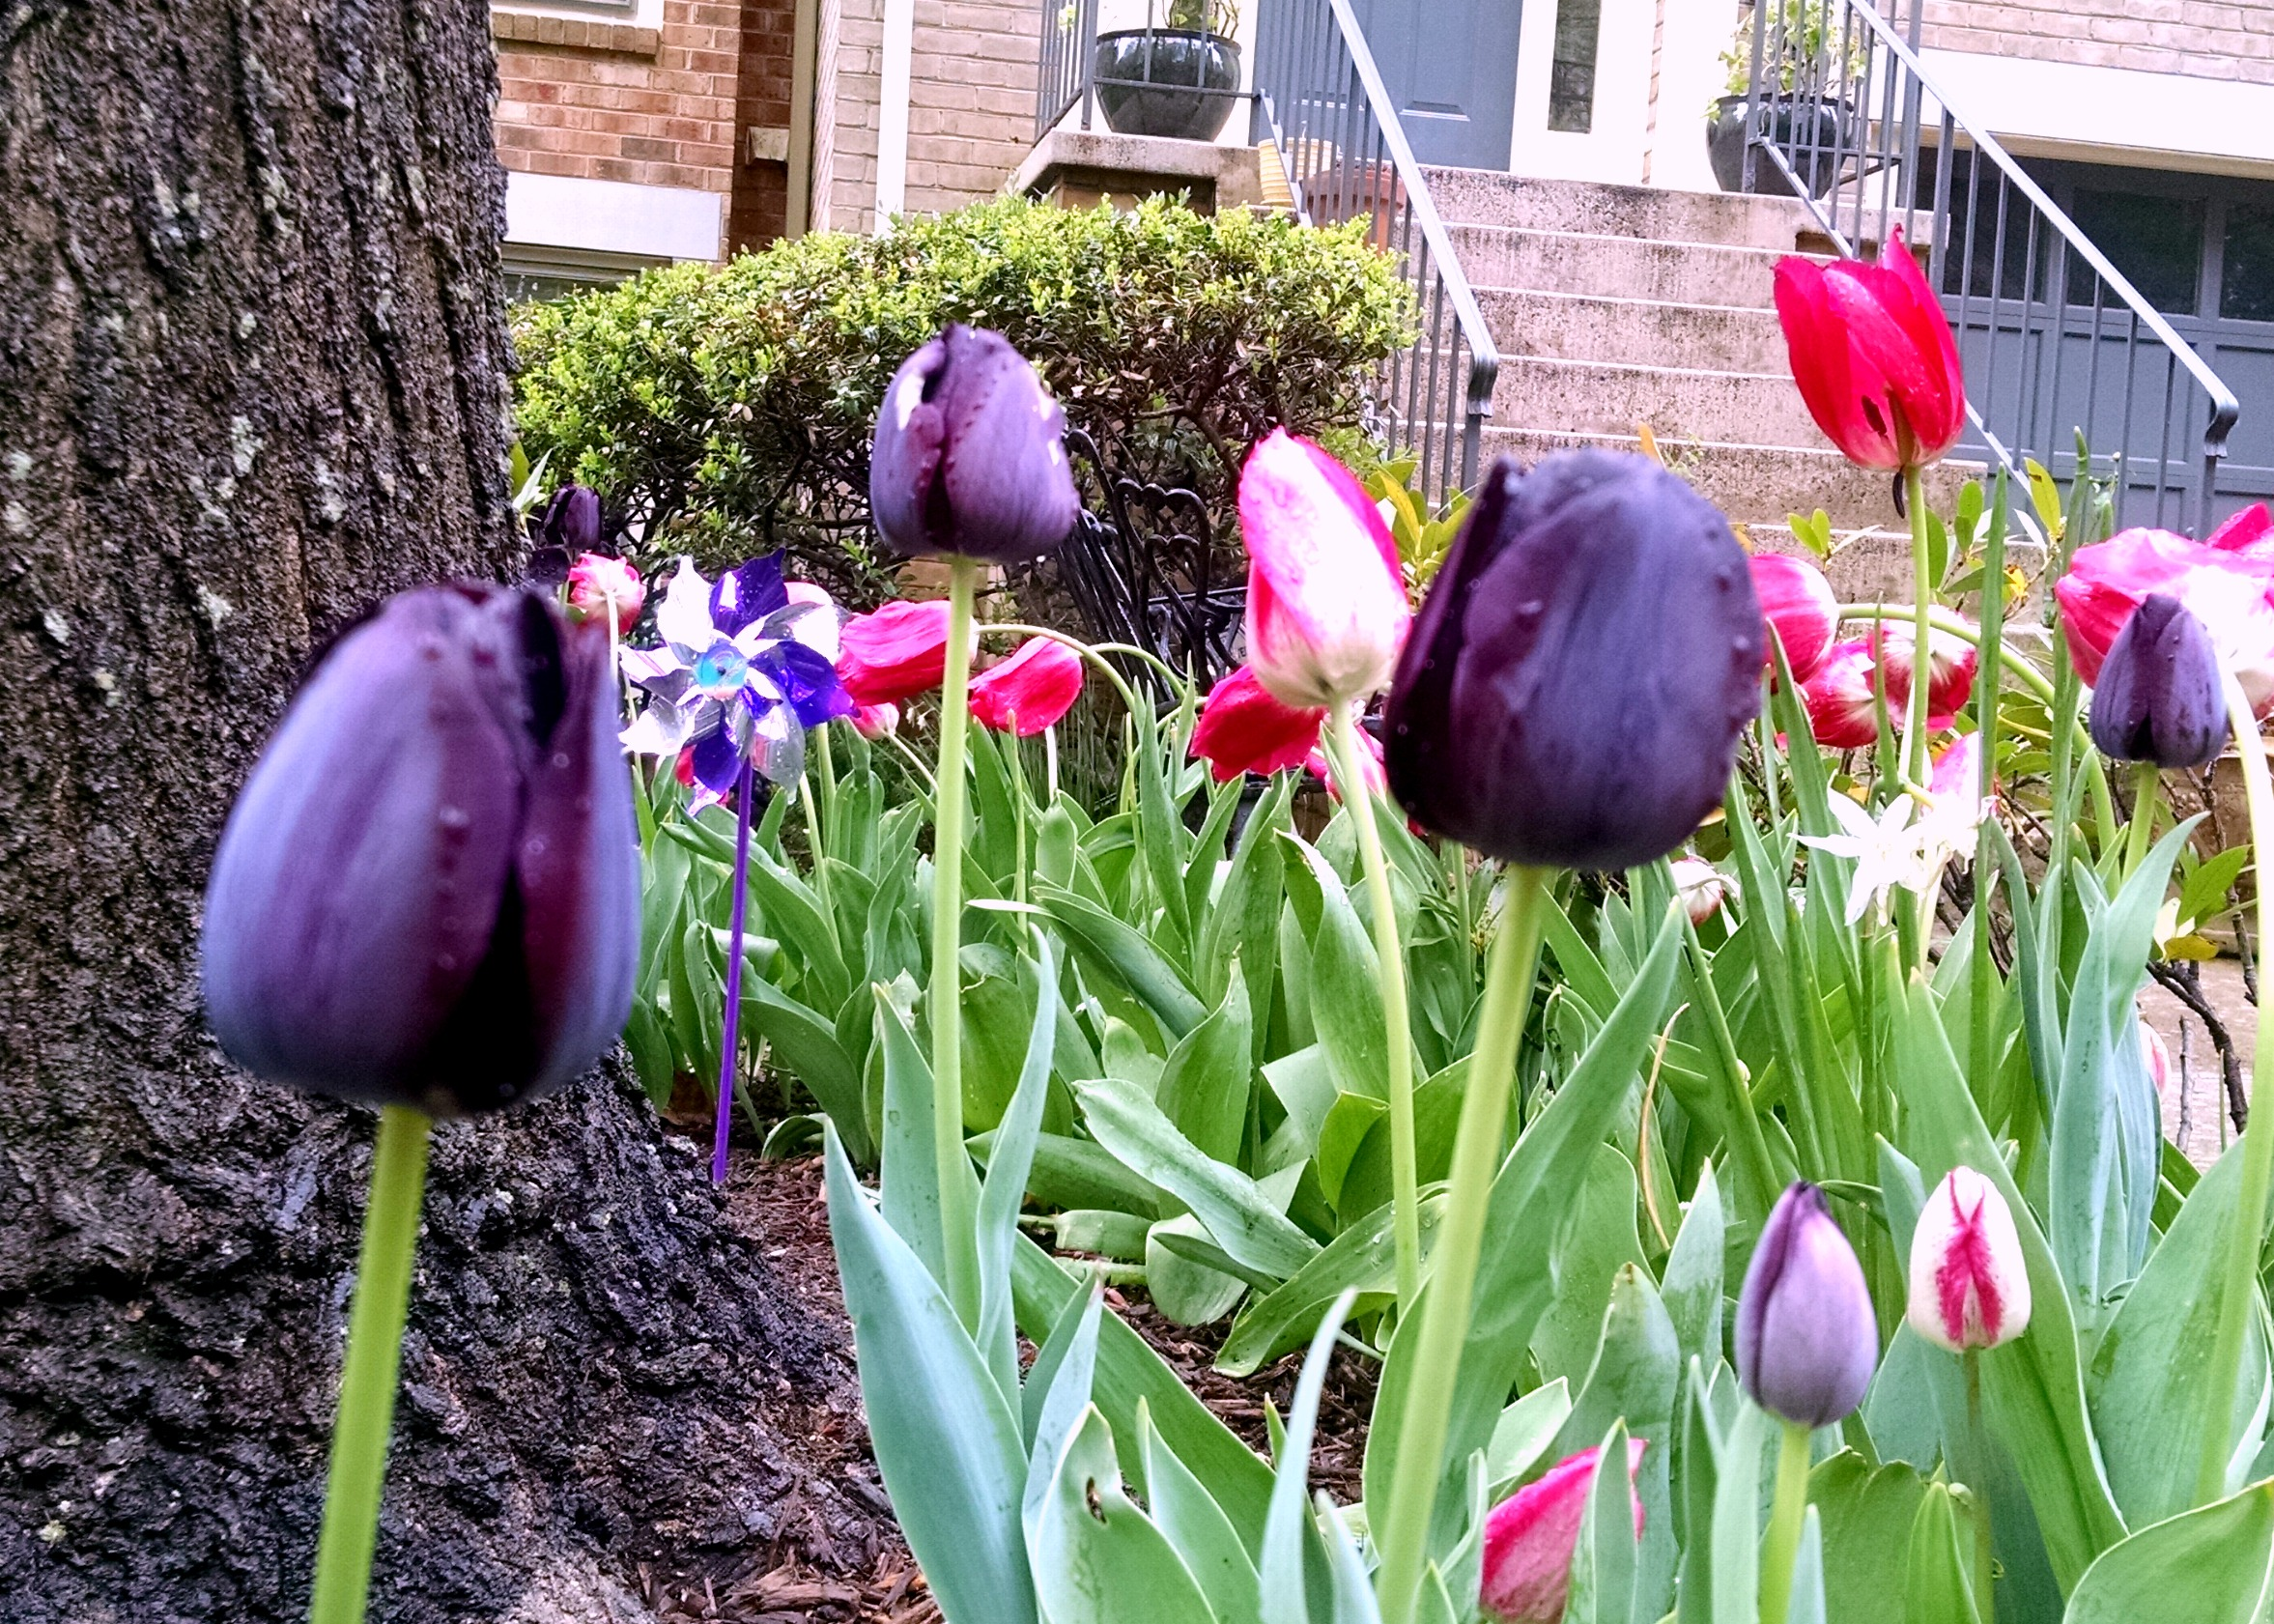 I spotted these tulips during my walk on Saturday. I'd never seen purple ones like these!